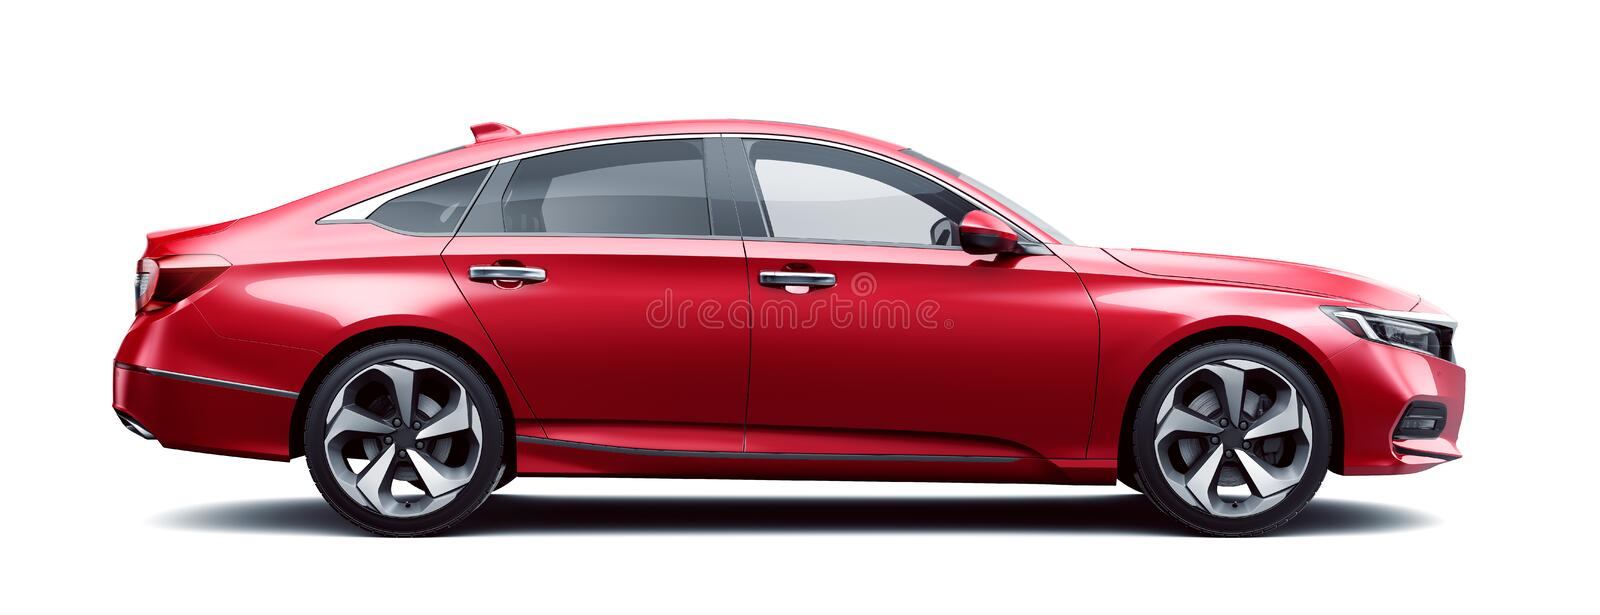 Four door car isolated on white background. 3d render royalty free stock photos